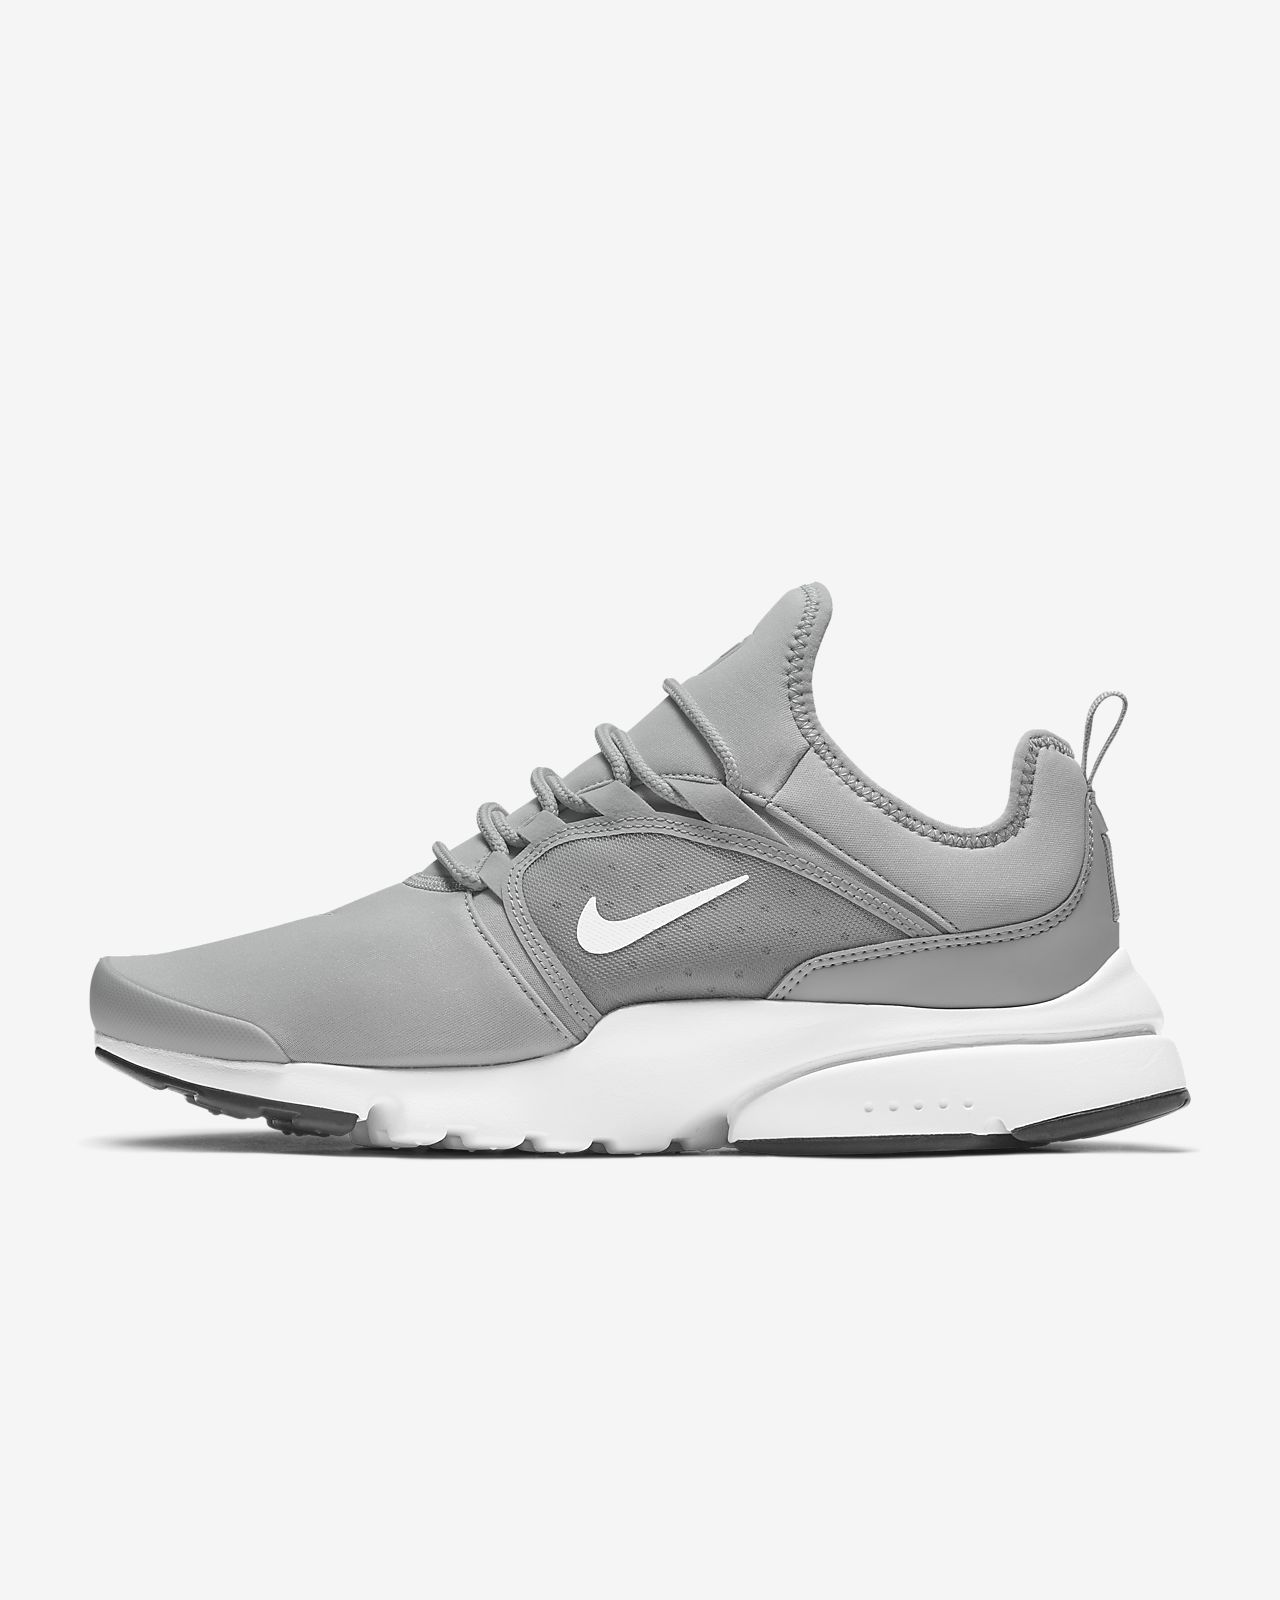 Qxu1ntwg6 Fly Presto Pour Homme Chaussure Ca World Nike 4w074